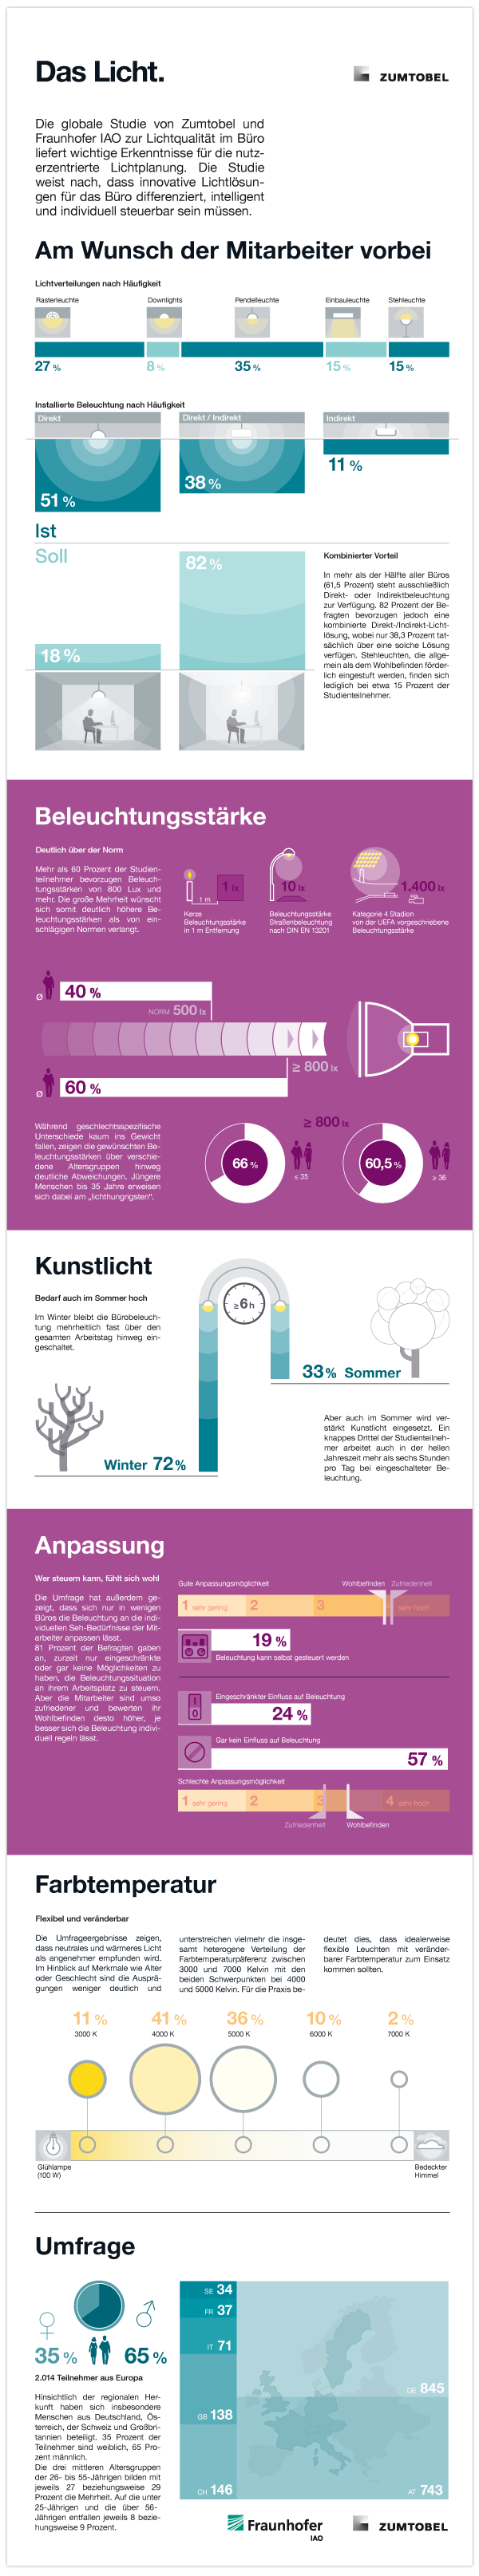 infographic statistics ligthing survey Charts data driven Data explanatory graphic